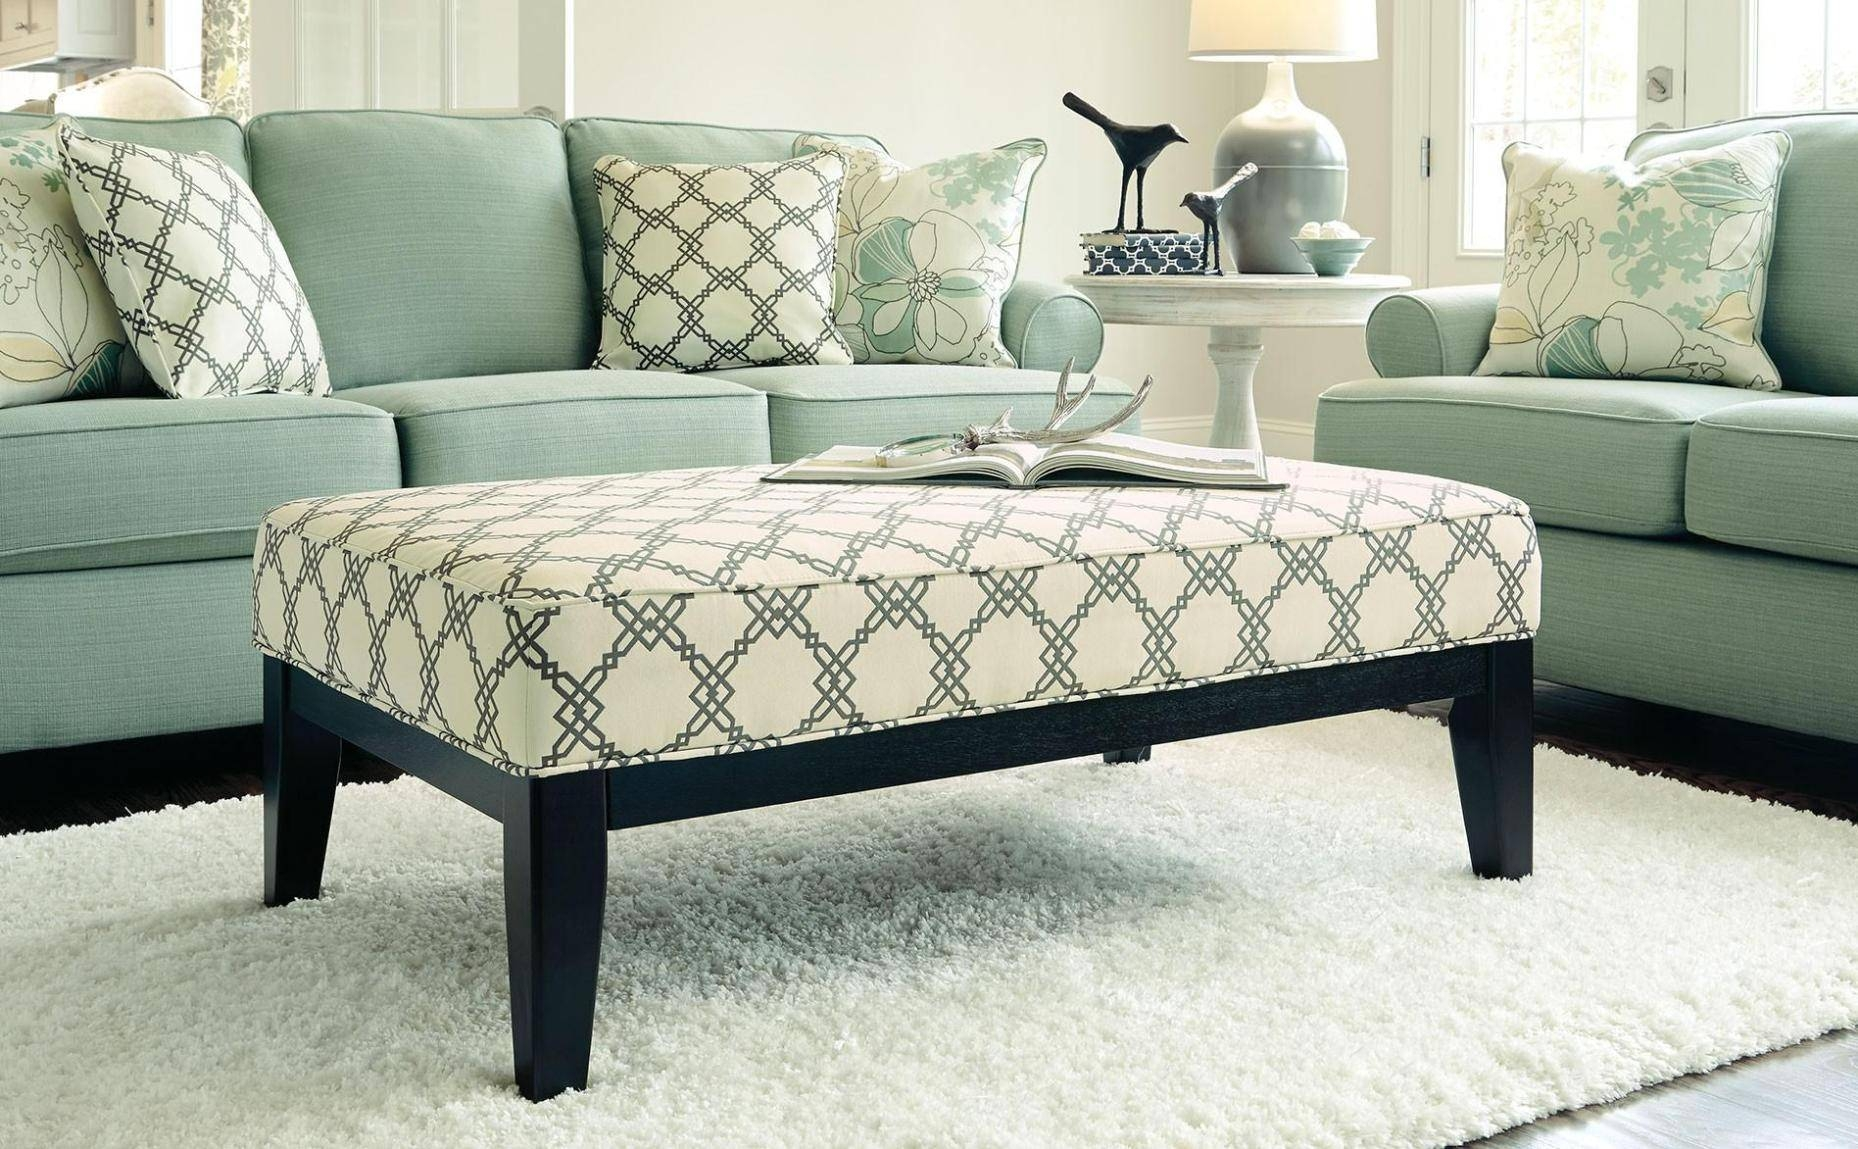 Furniture: Alluring Oversized Chairs With Ottoman For Living Room regarding Oversized Sofa Chairs (Image 7 of 15)